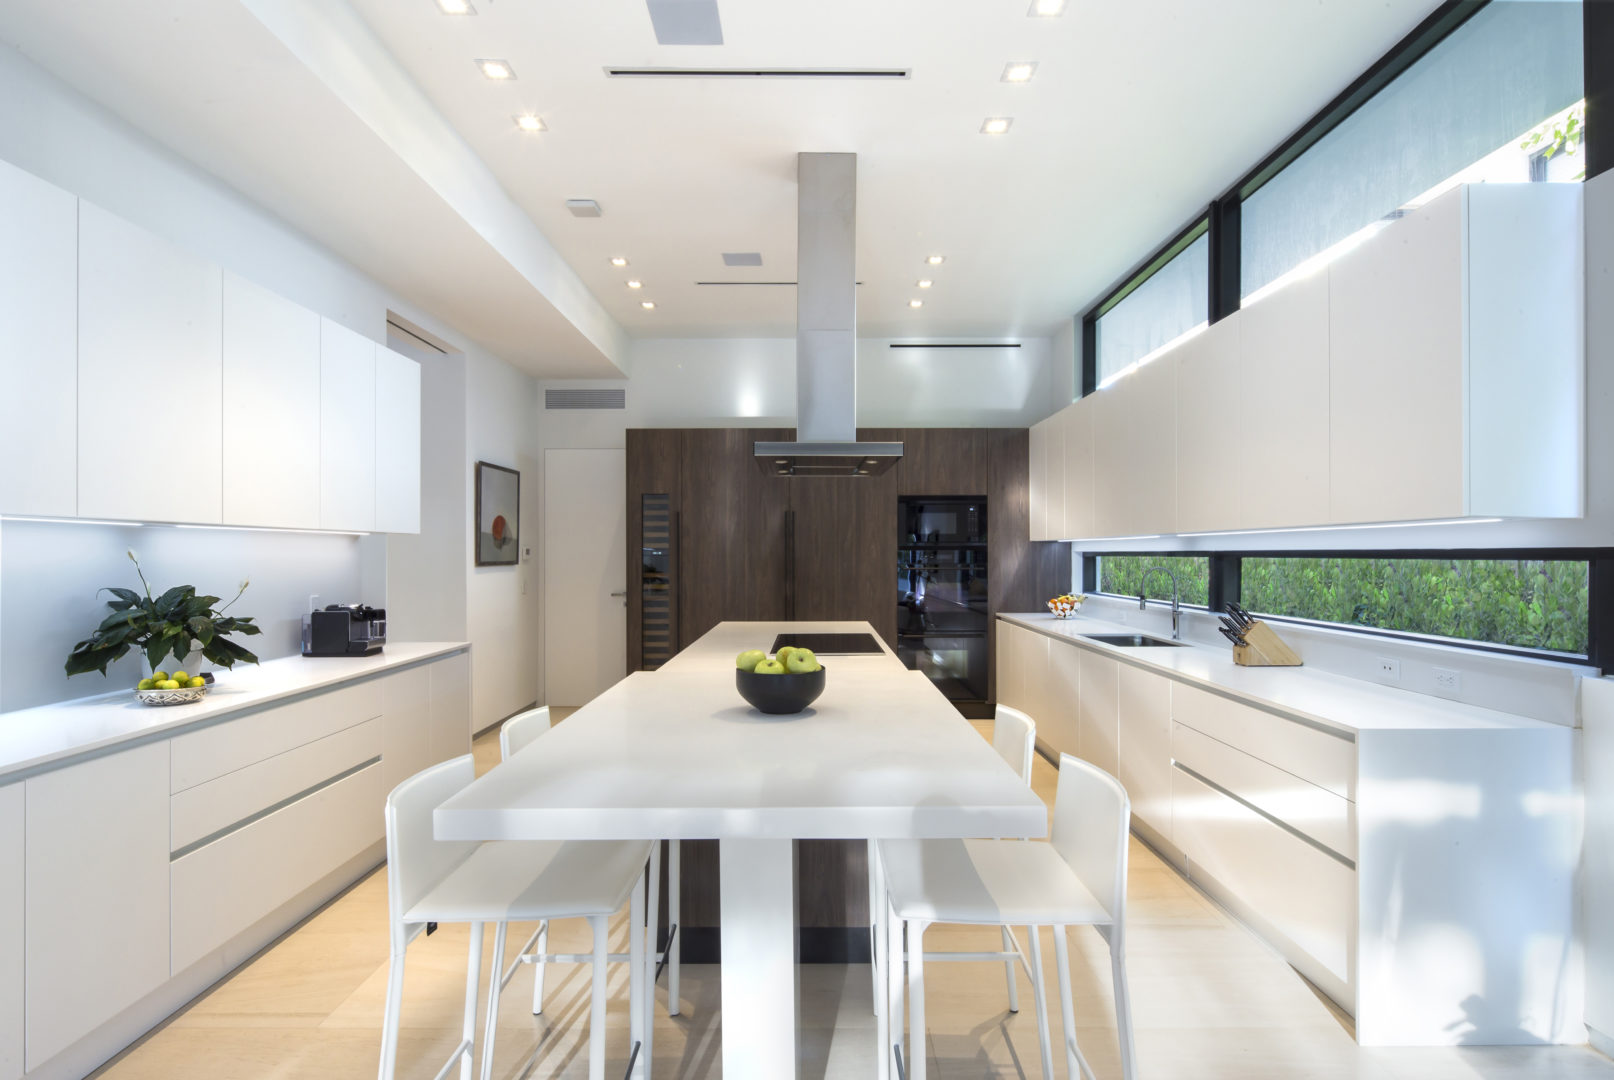 Golden Beach Residence High-end Builder Contractor Miami Modern Luxury Design Interior Kitchen Appliances marble modern